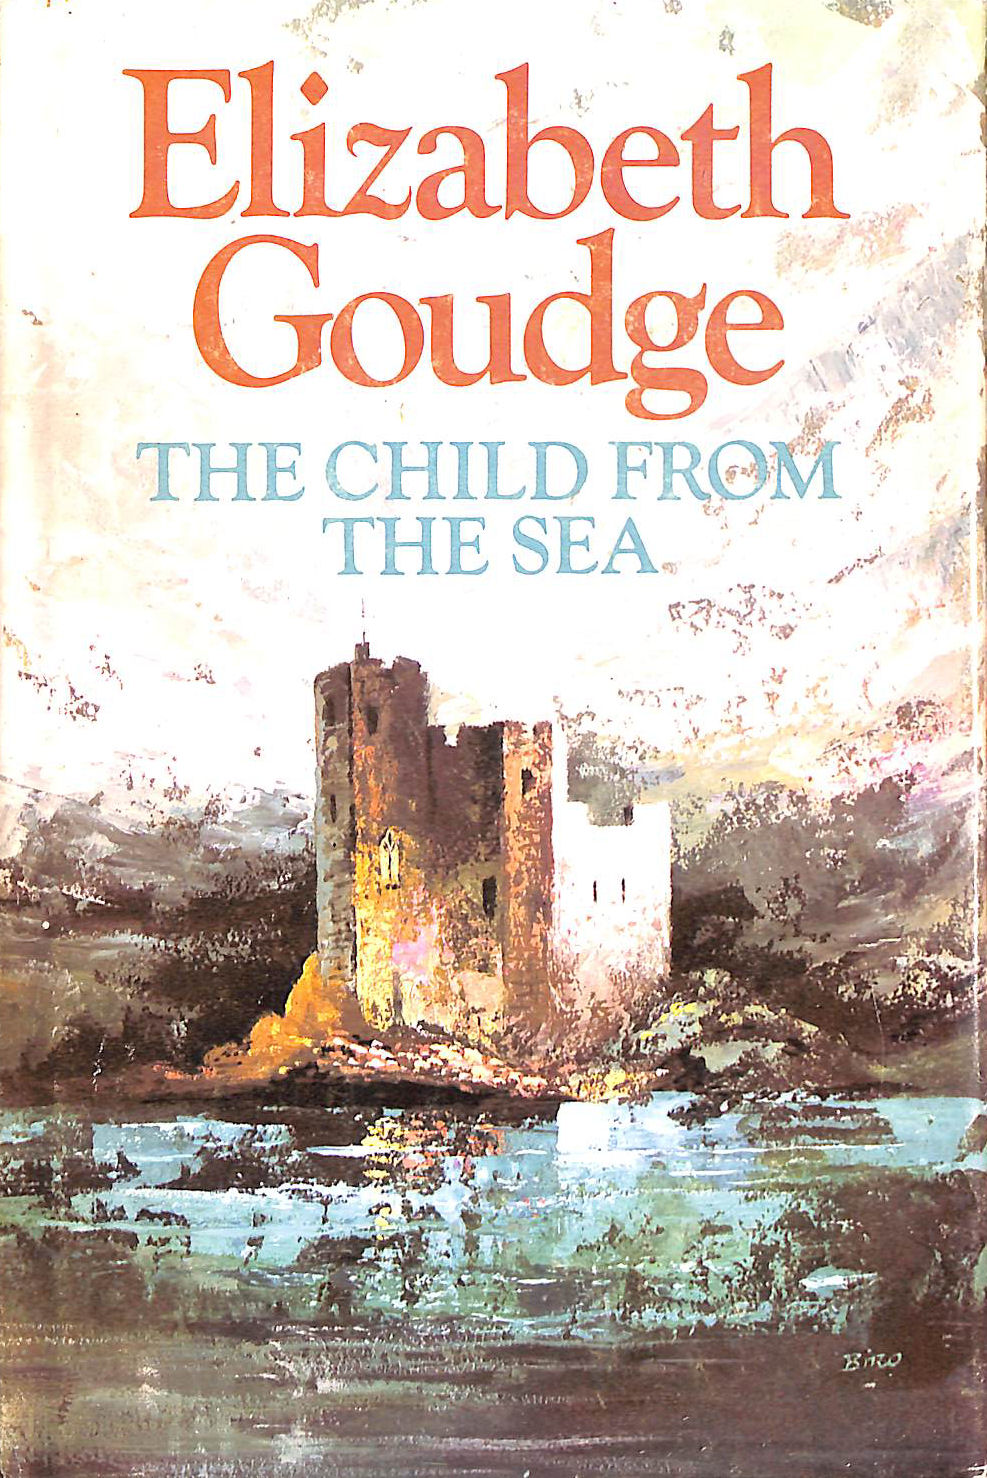 Image for The Elizabeth Goudge The Child From The Sea